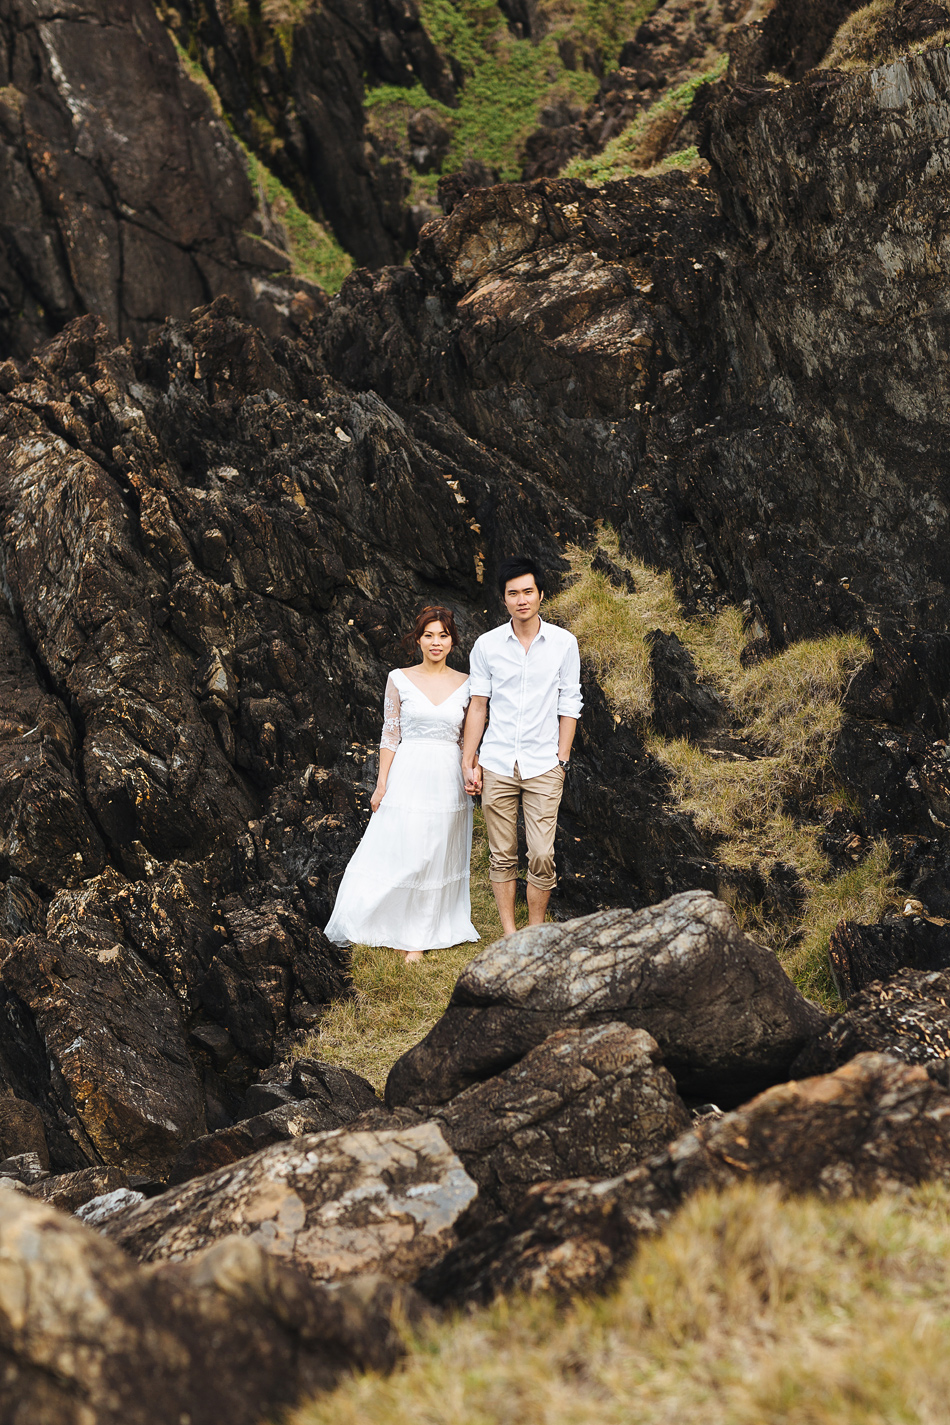 brisbane wedding photographer at a pre wedding engagement photography session at byron bay cliffs near the lighthouse